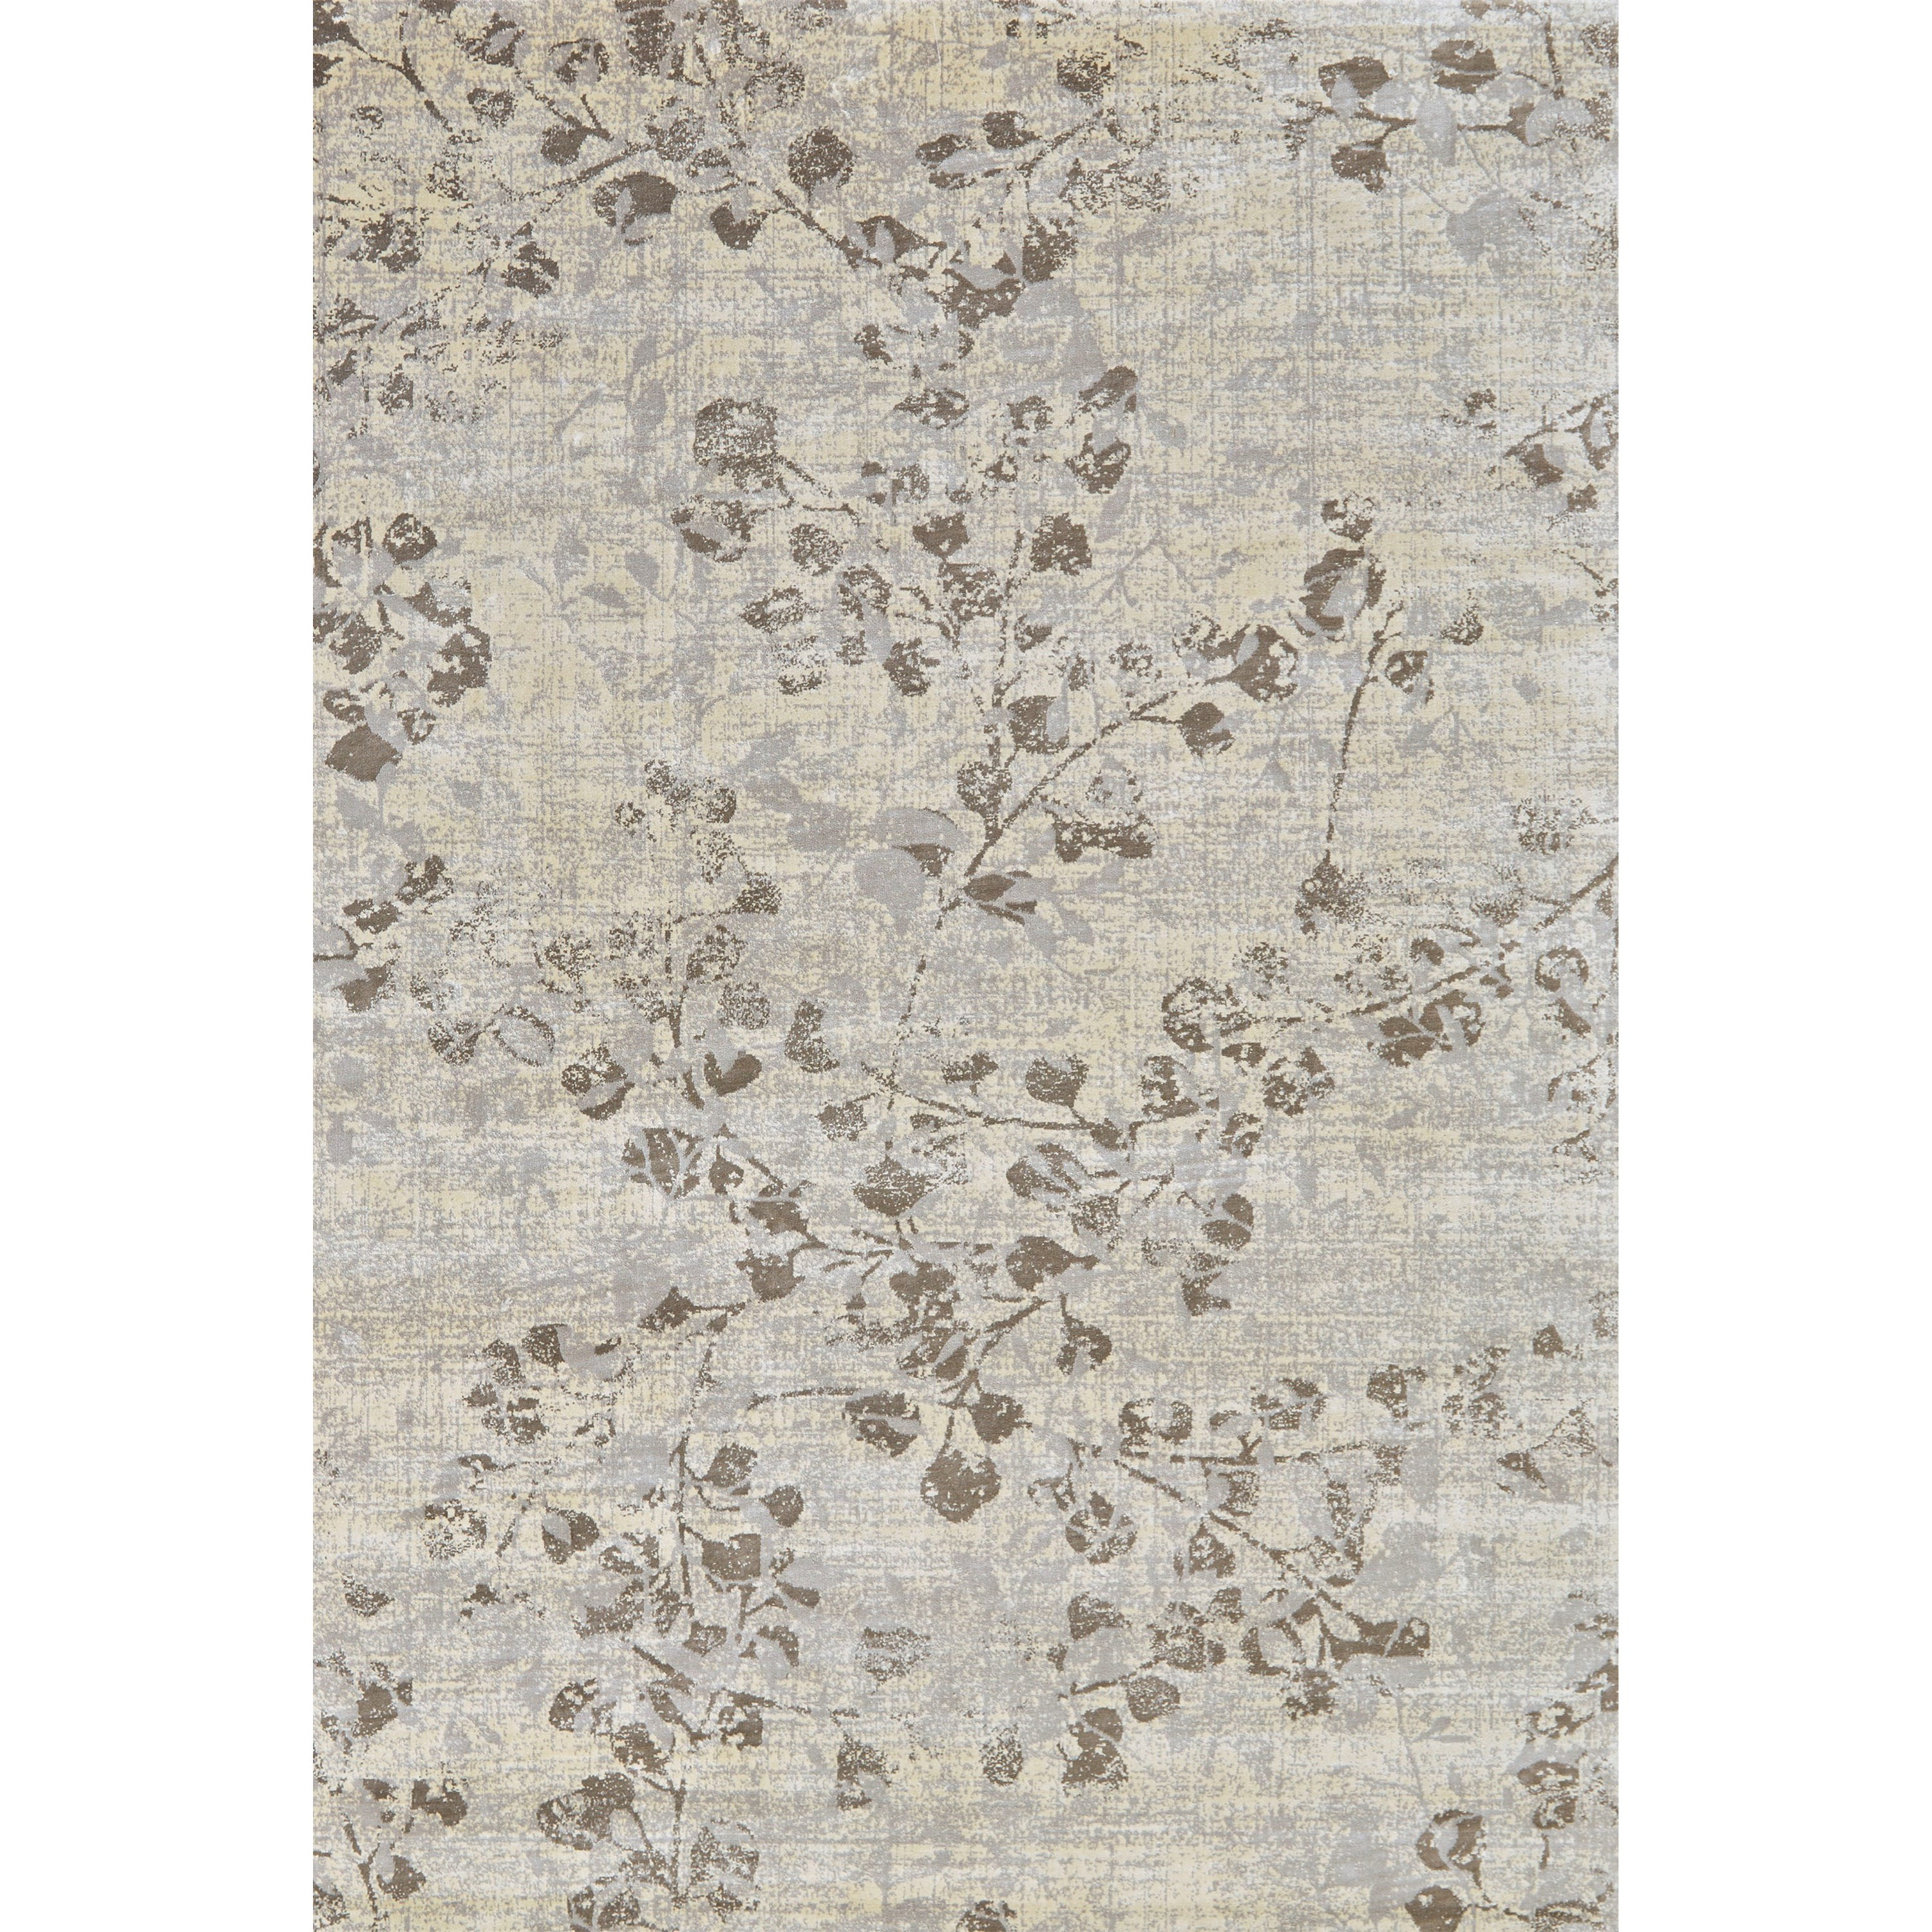 "Fiona Steel 9'-2"" X 12'-2"" Area Rug by Feizy Rugs at Jacksonville Furniture Mart"